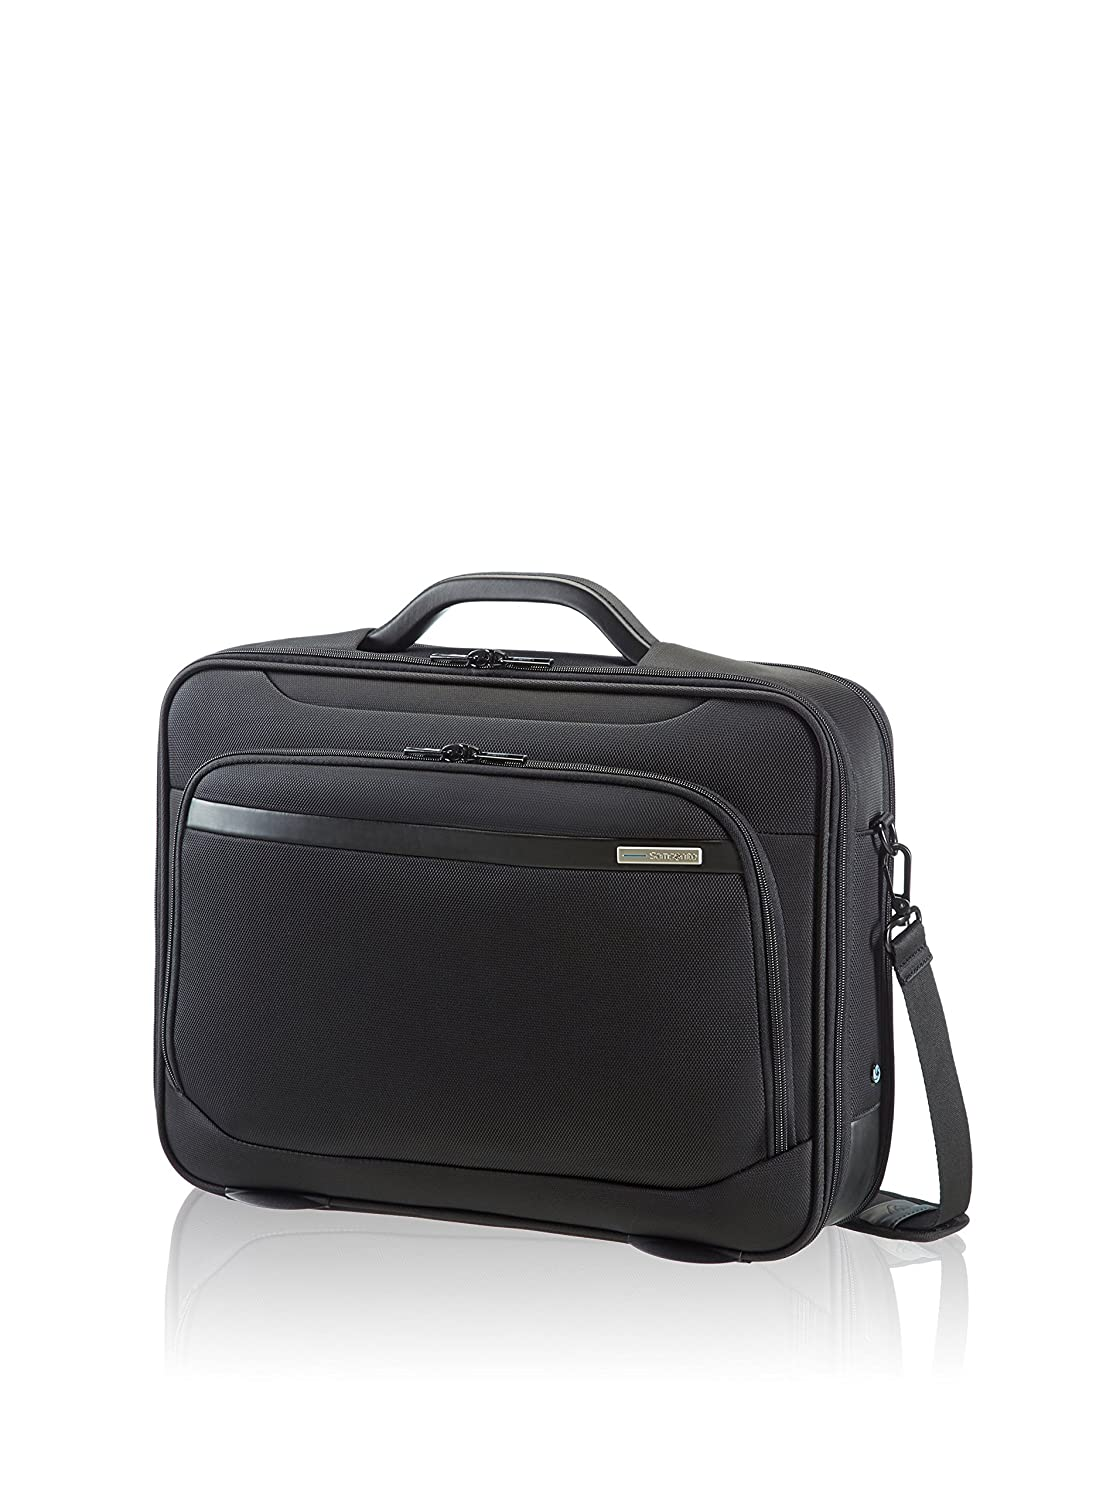 Samsonite Vectura Office Case Plus Maletín para ordenador portátil de  cm